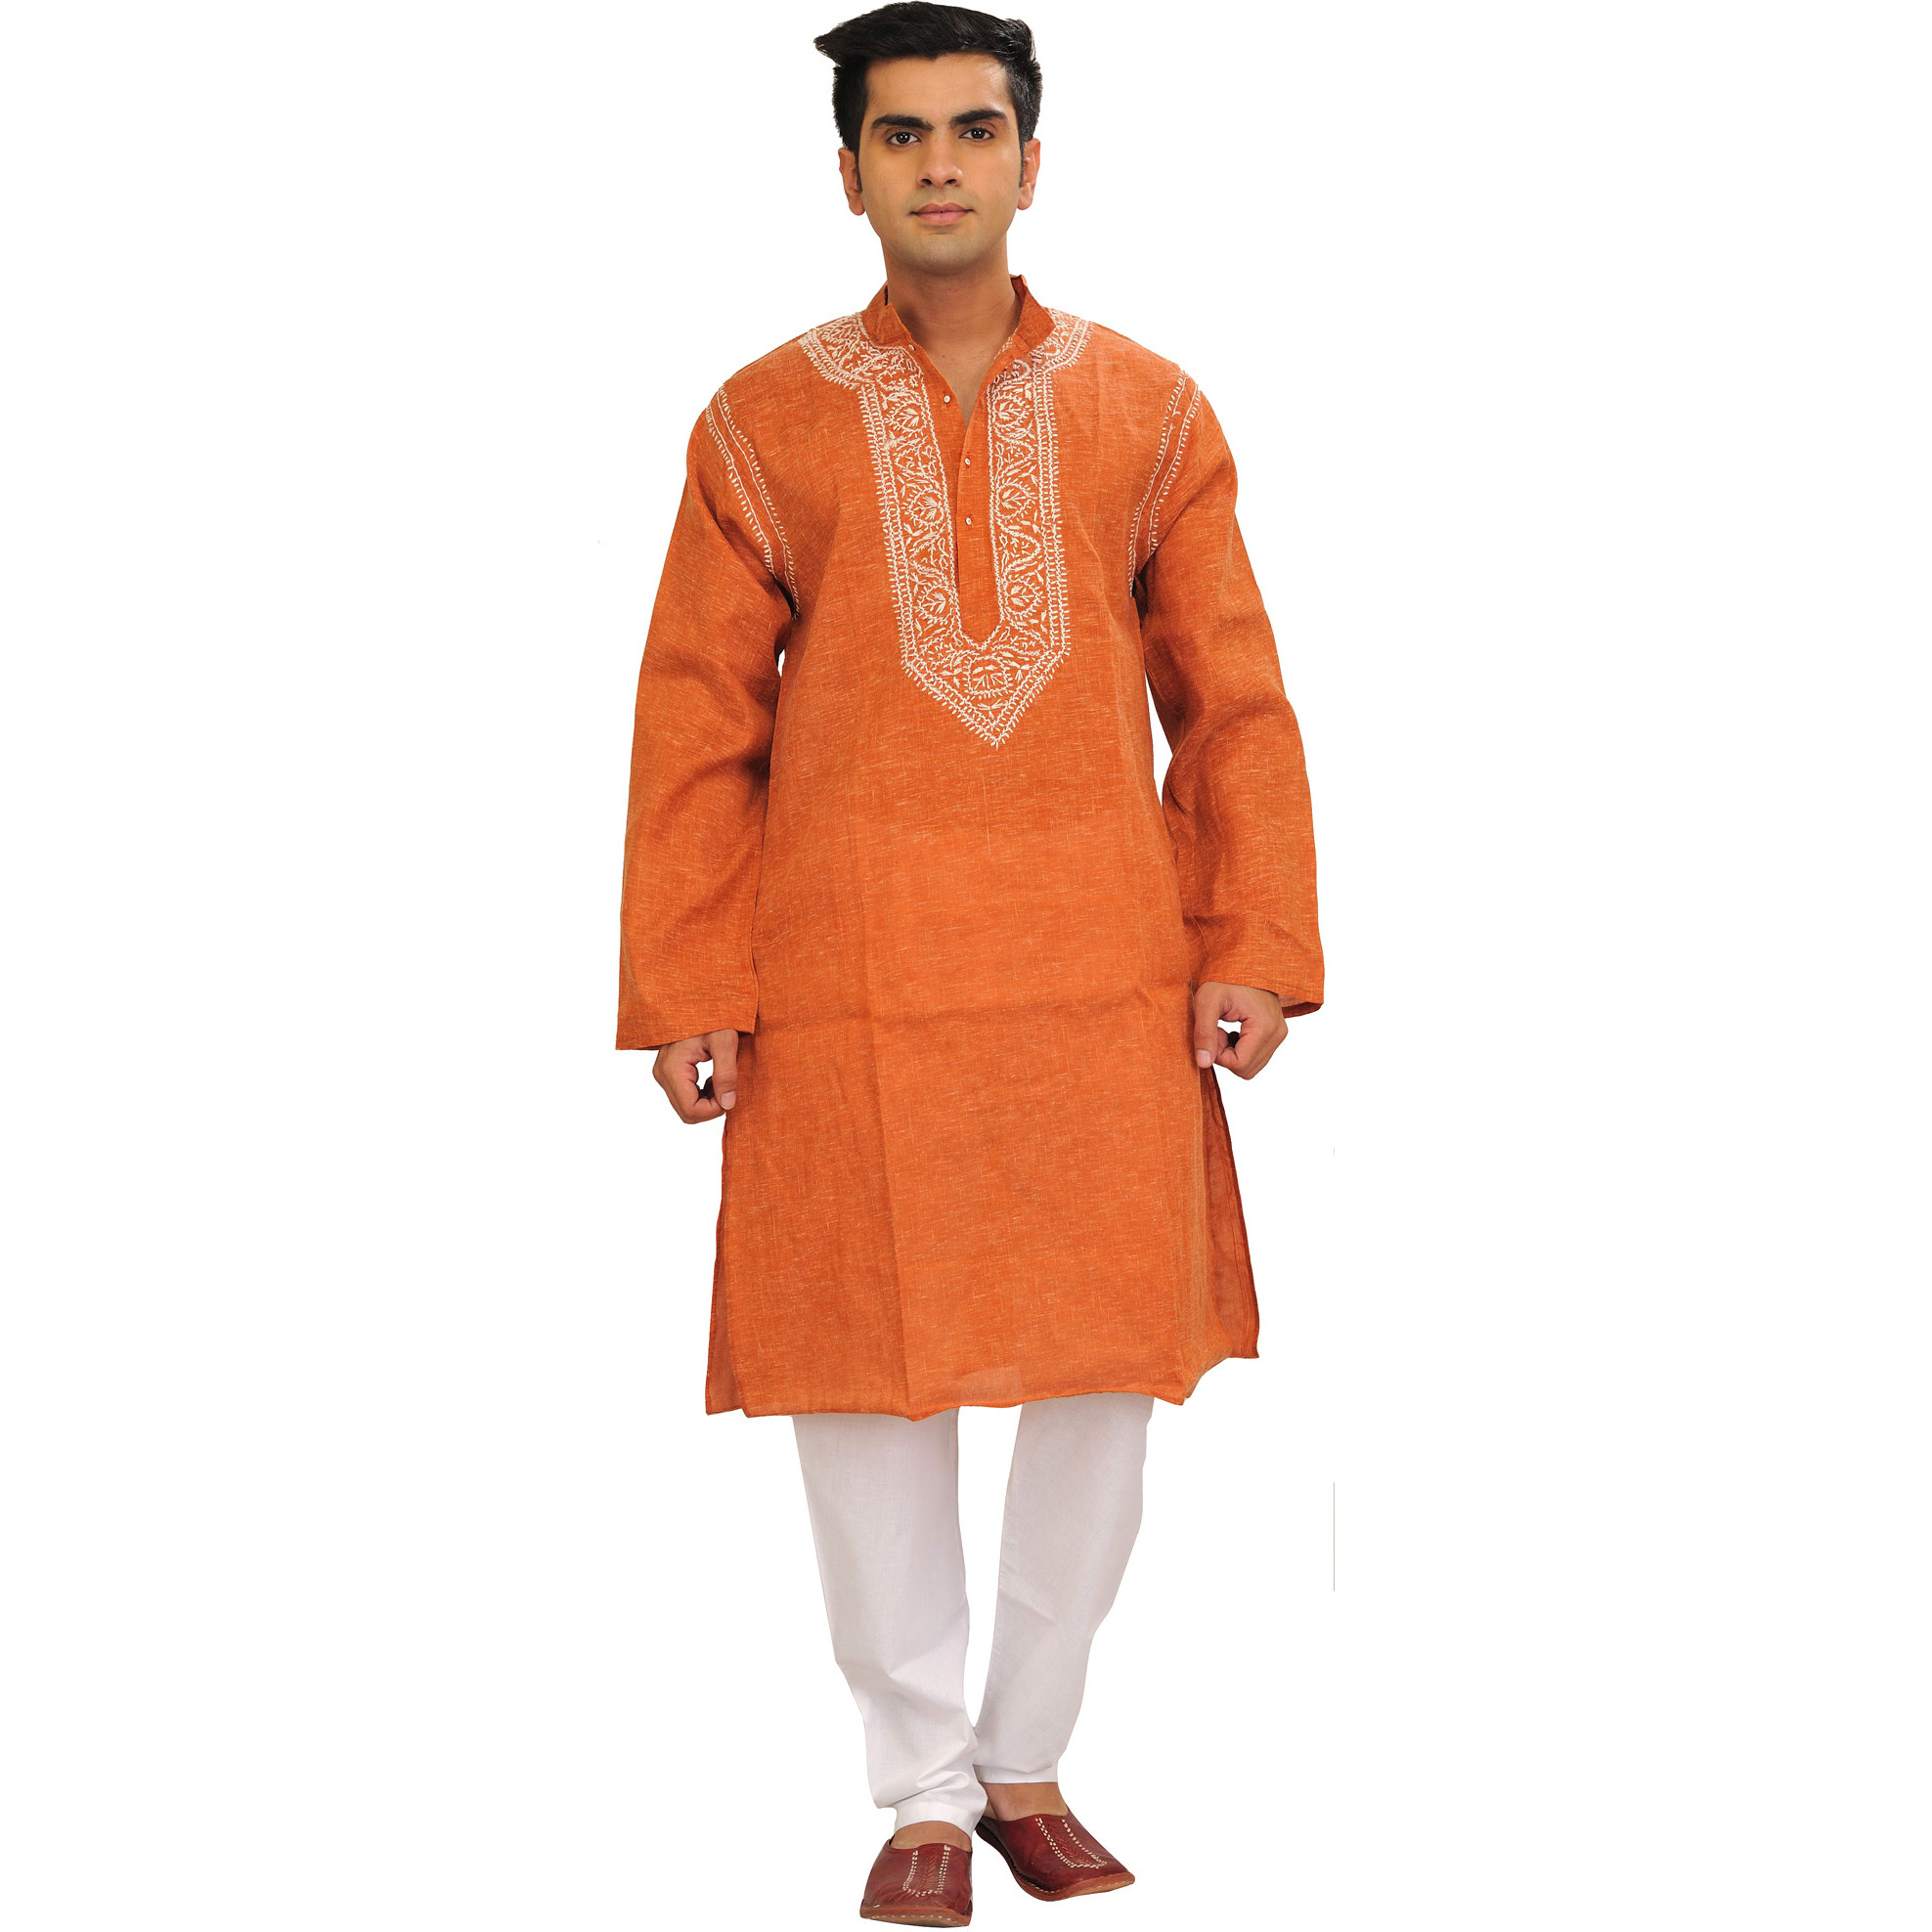 Casual Kurta Pajama Set with Chikan Hand-Embroidery on Neck